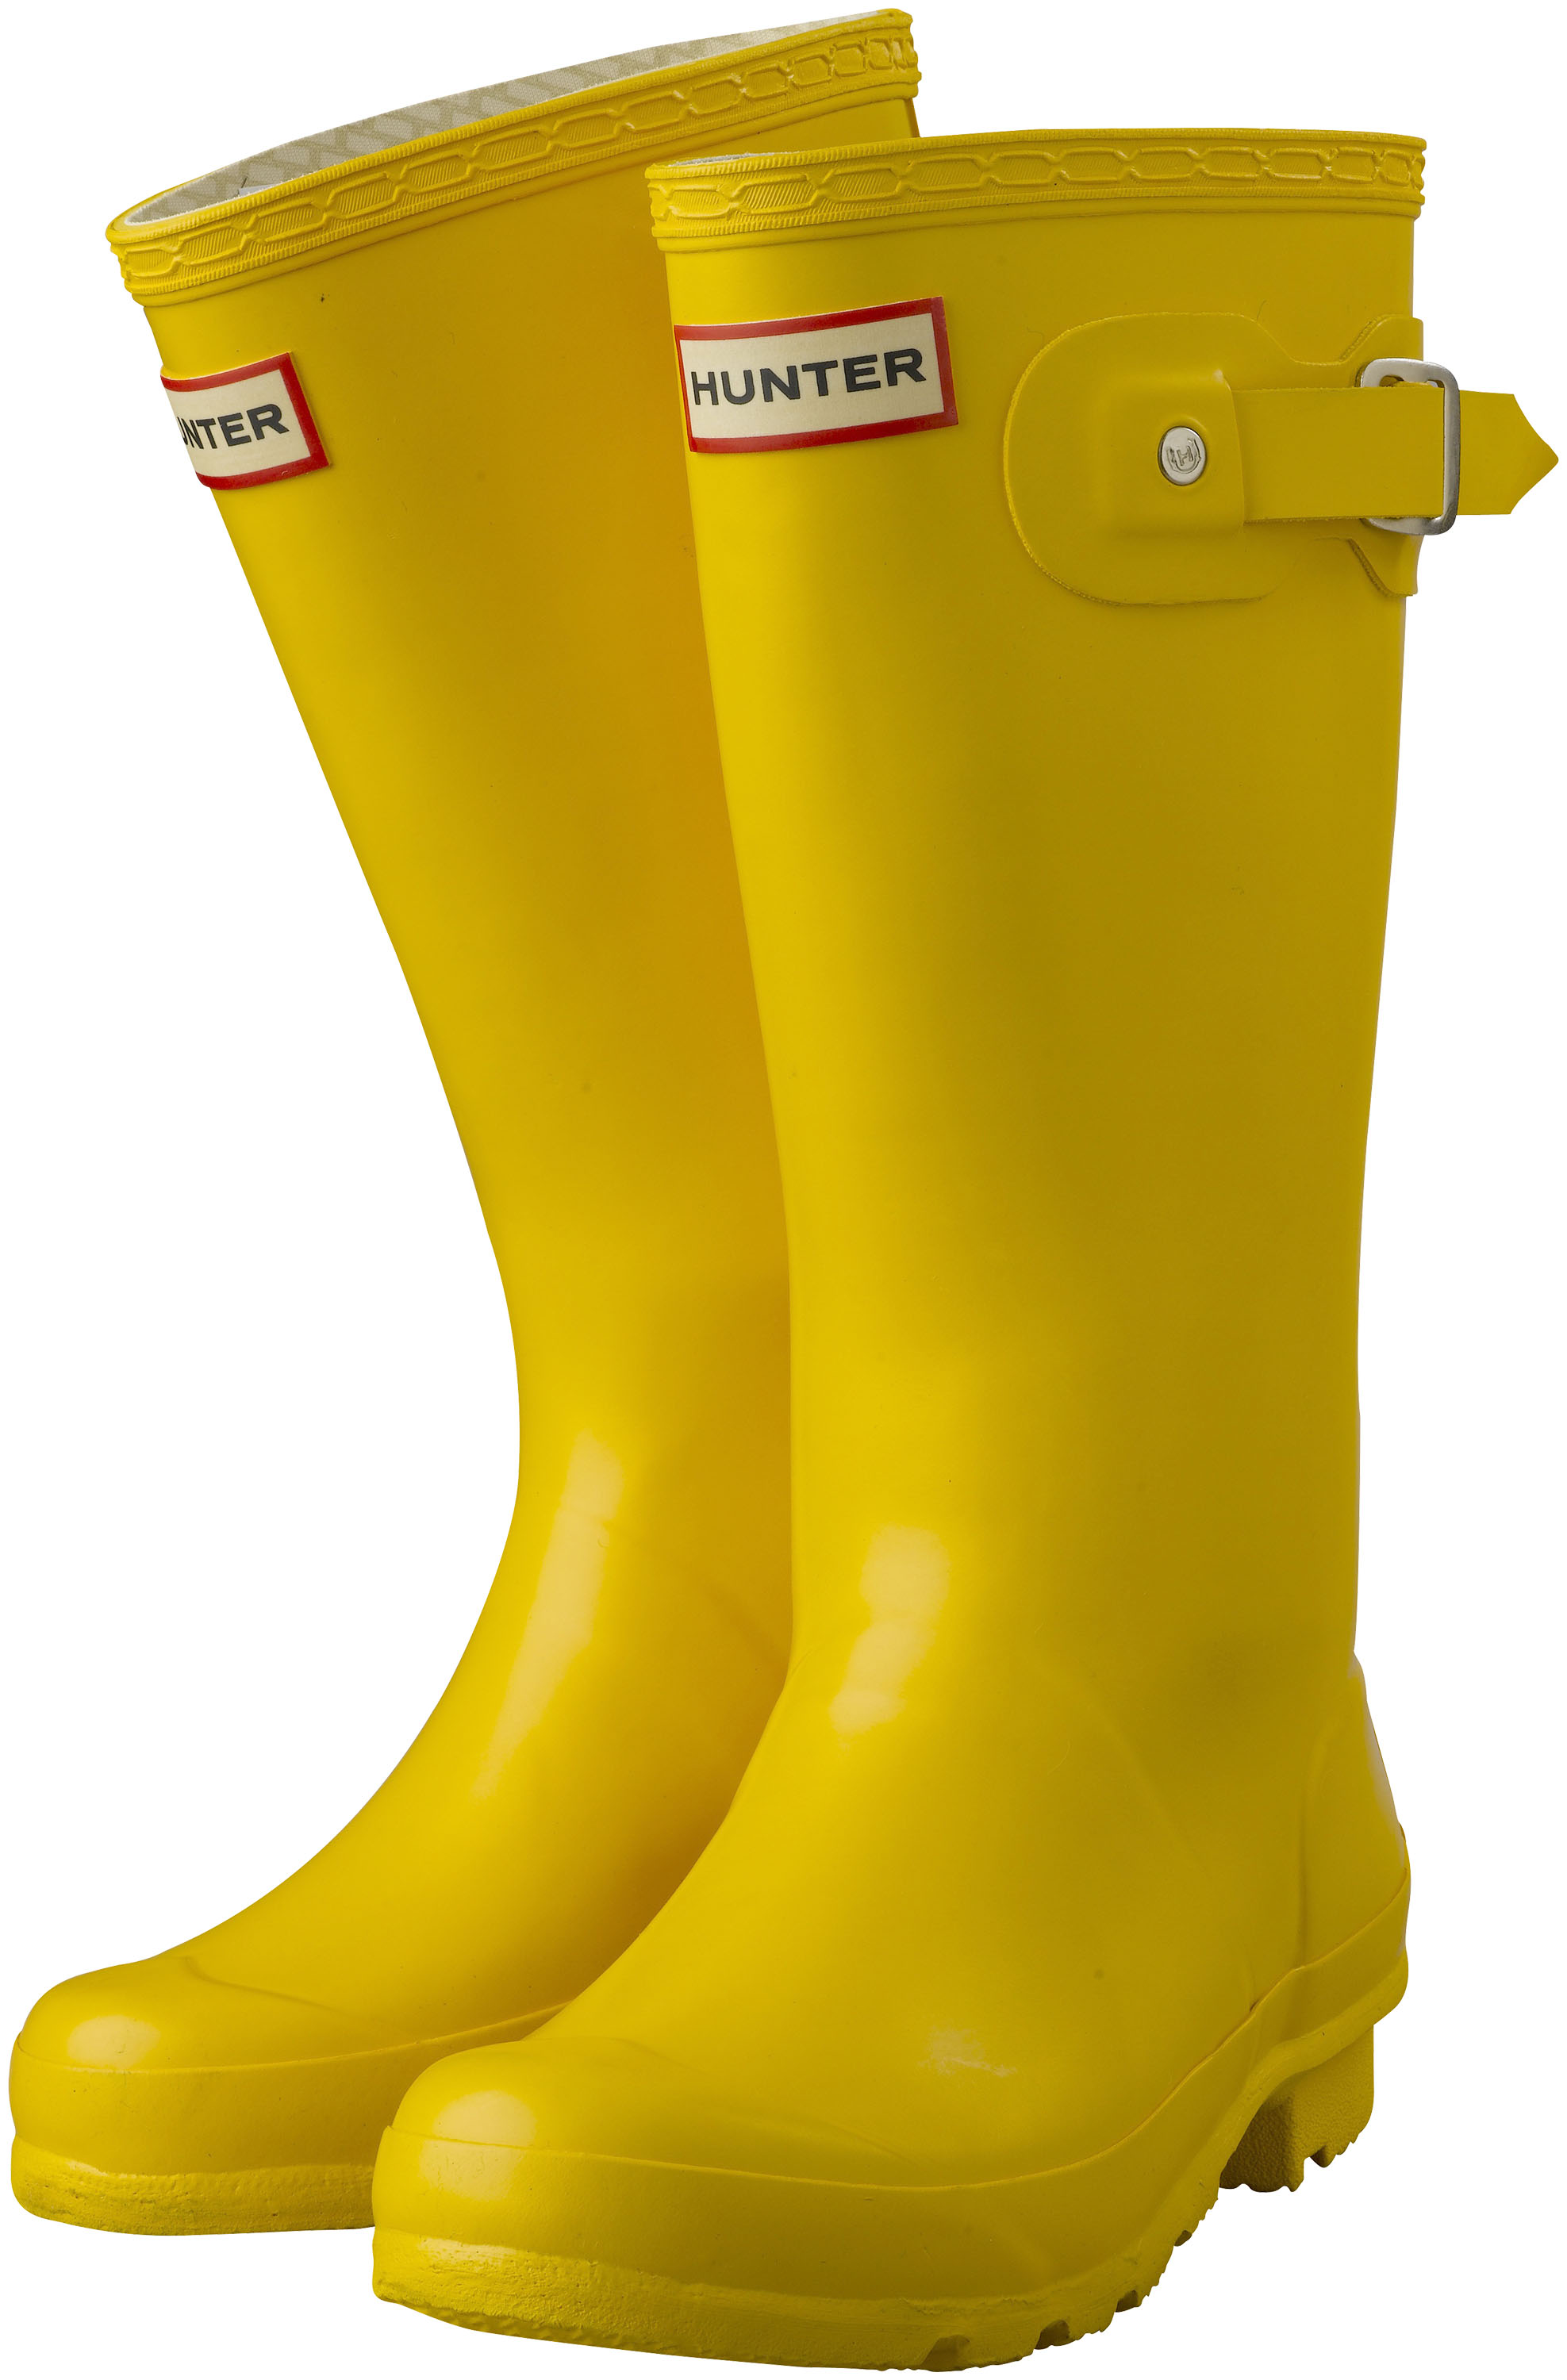 Yellow boots clipart - Clipground - photo #16